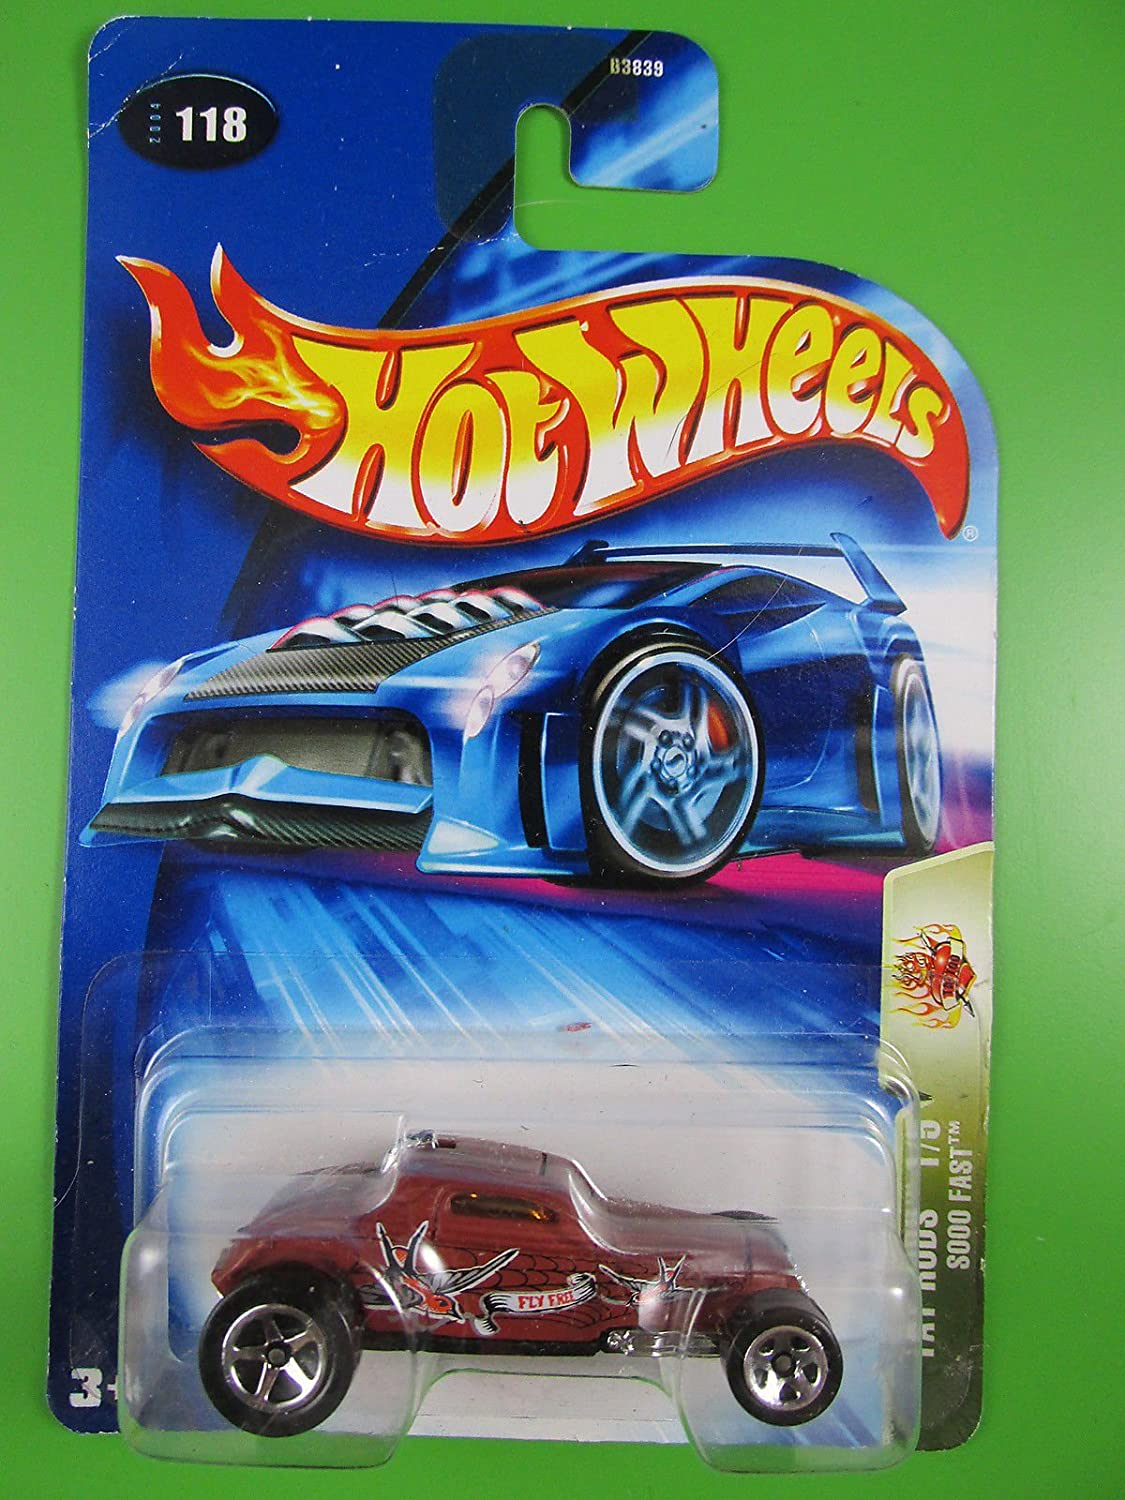 HOT WHEELS 2004 - Sooo Fast - Tat Rods - 118 - US-Card - neu in OVP /item# R6SG5EB-48Q22516